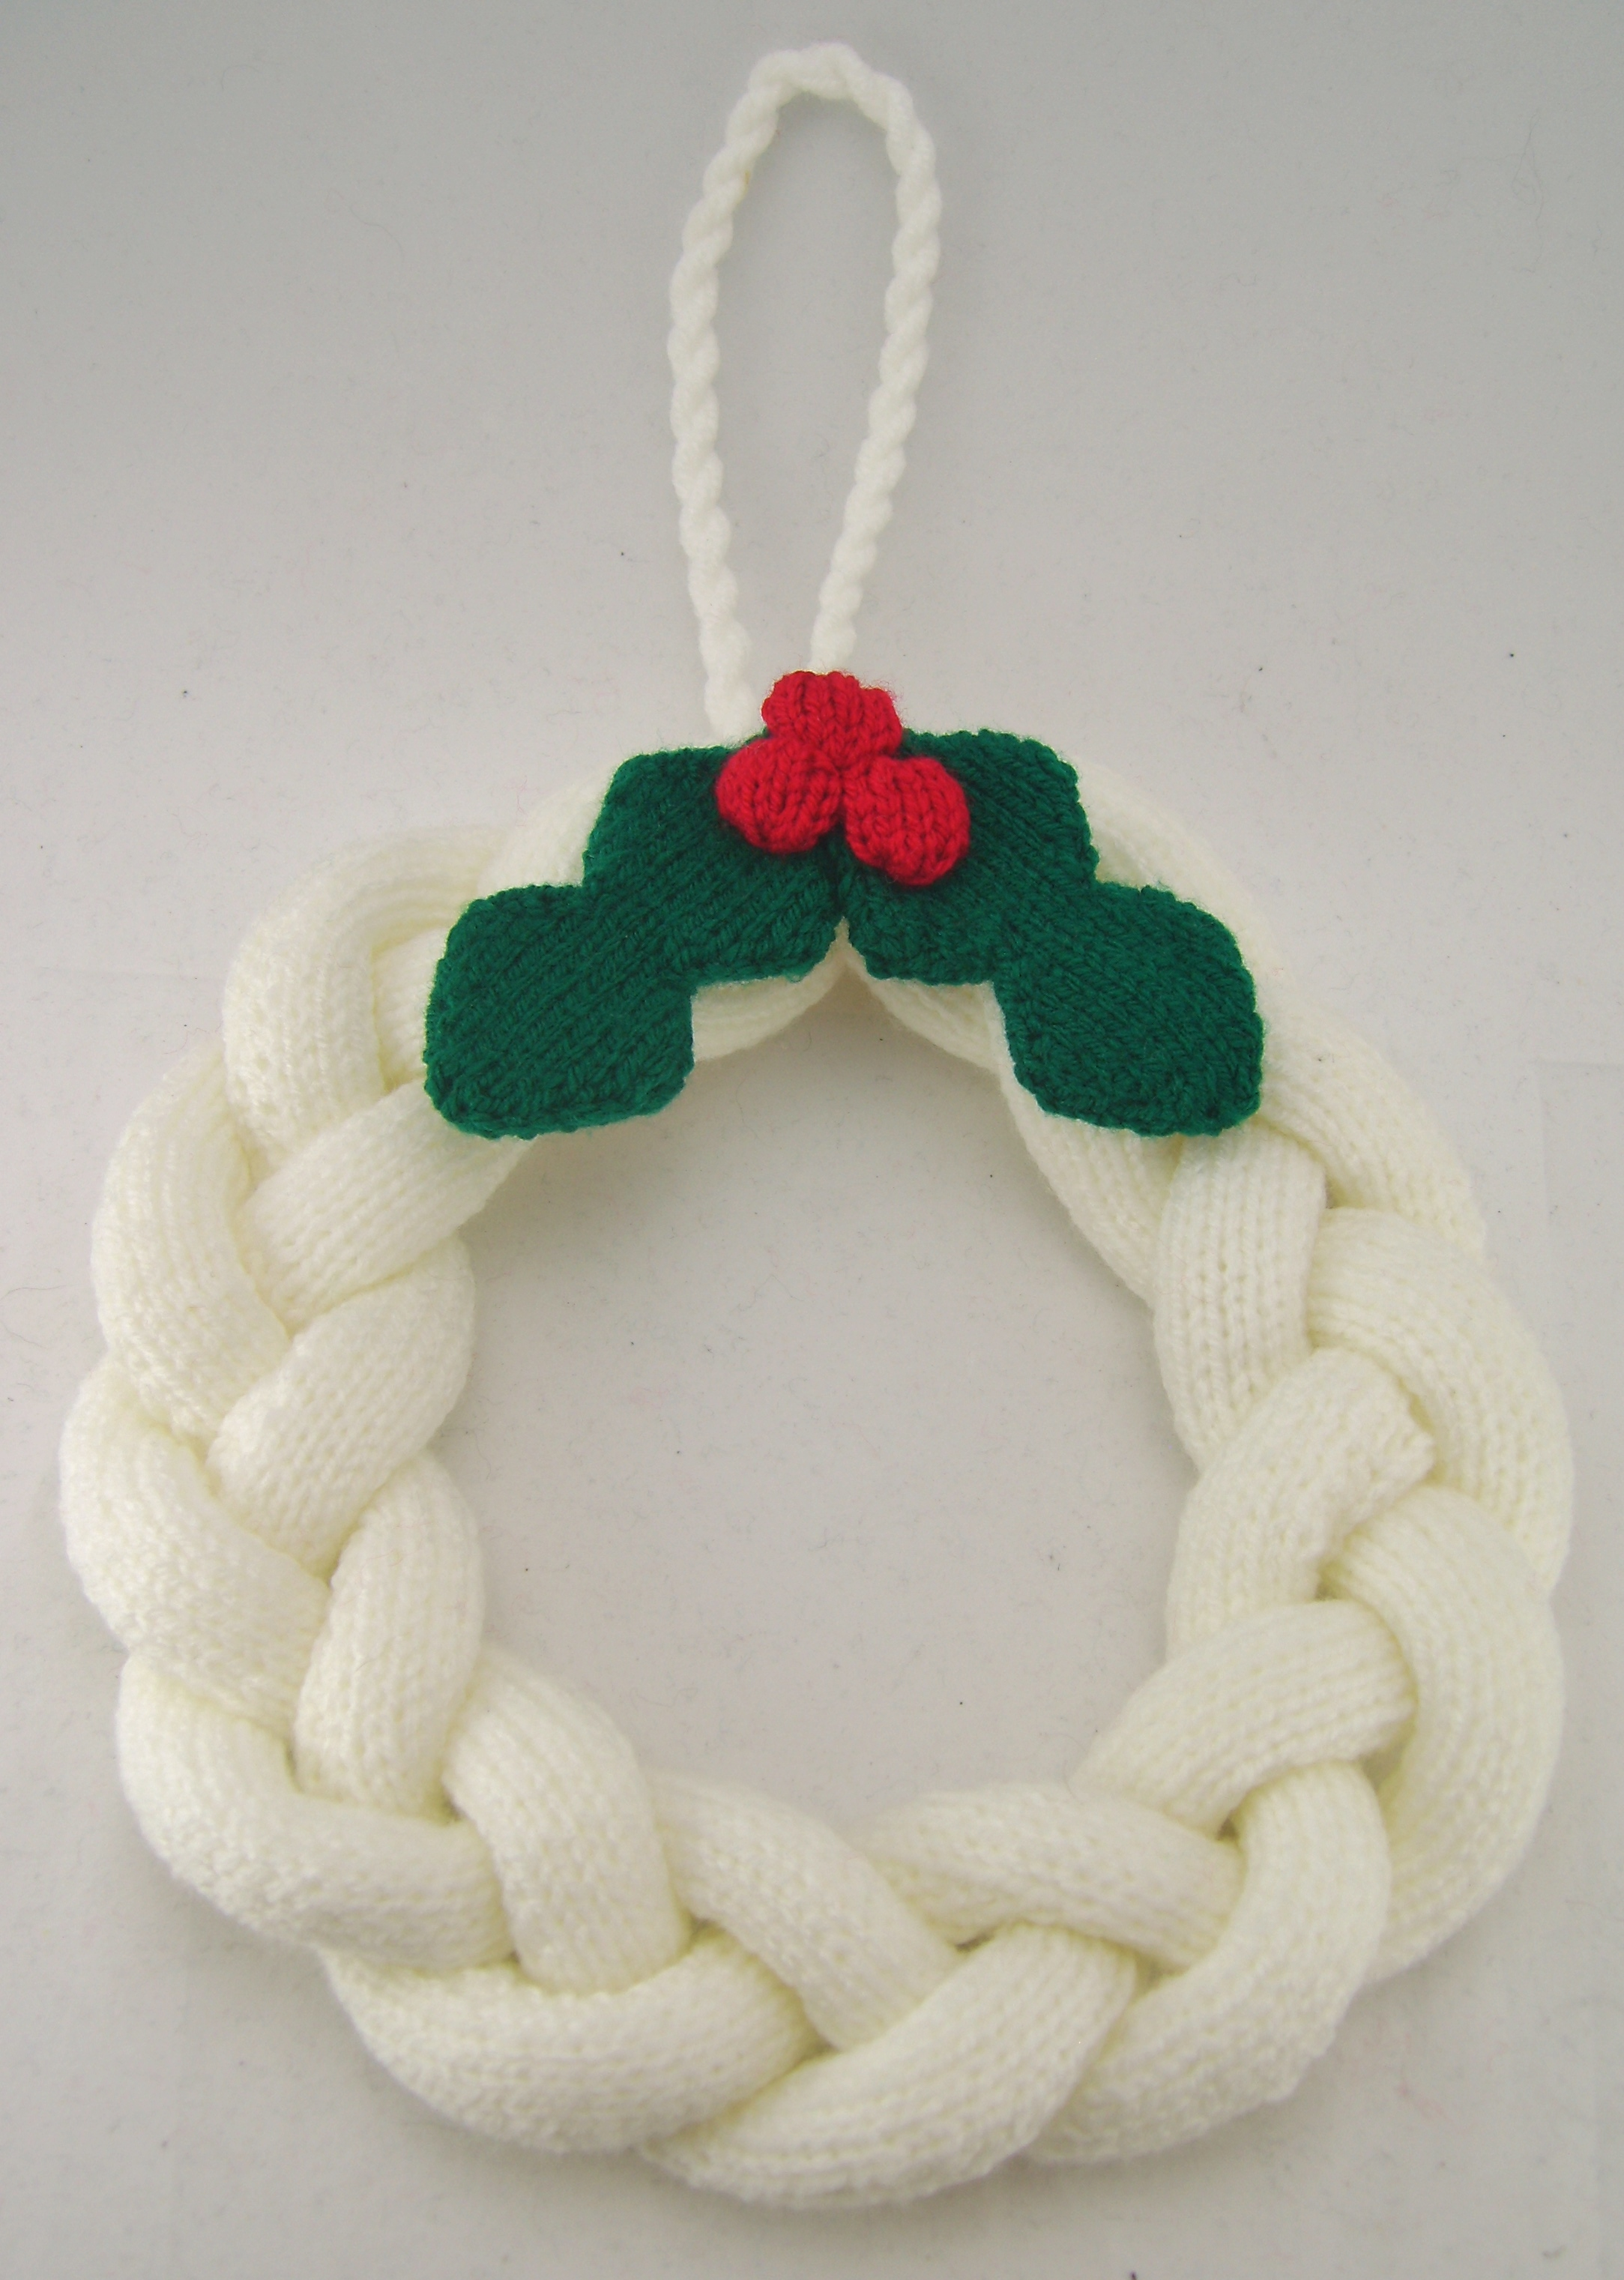 Simple Knitted Christmas Wreath Knitting Pattern ...